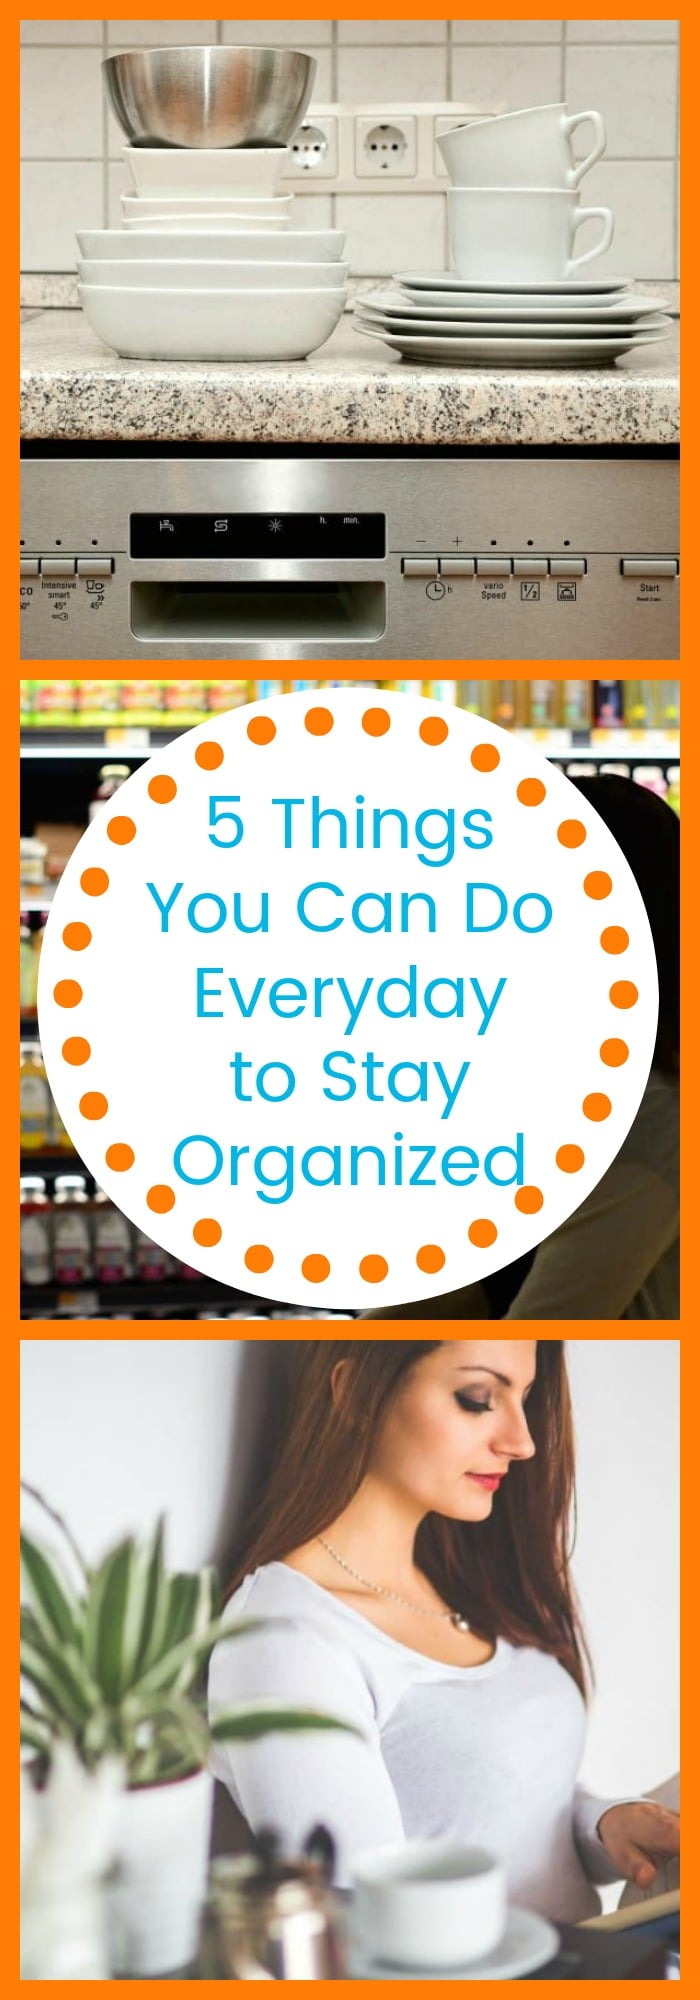 5 Things You Can Do Everyday to Stay Organized